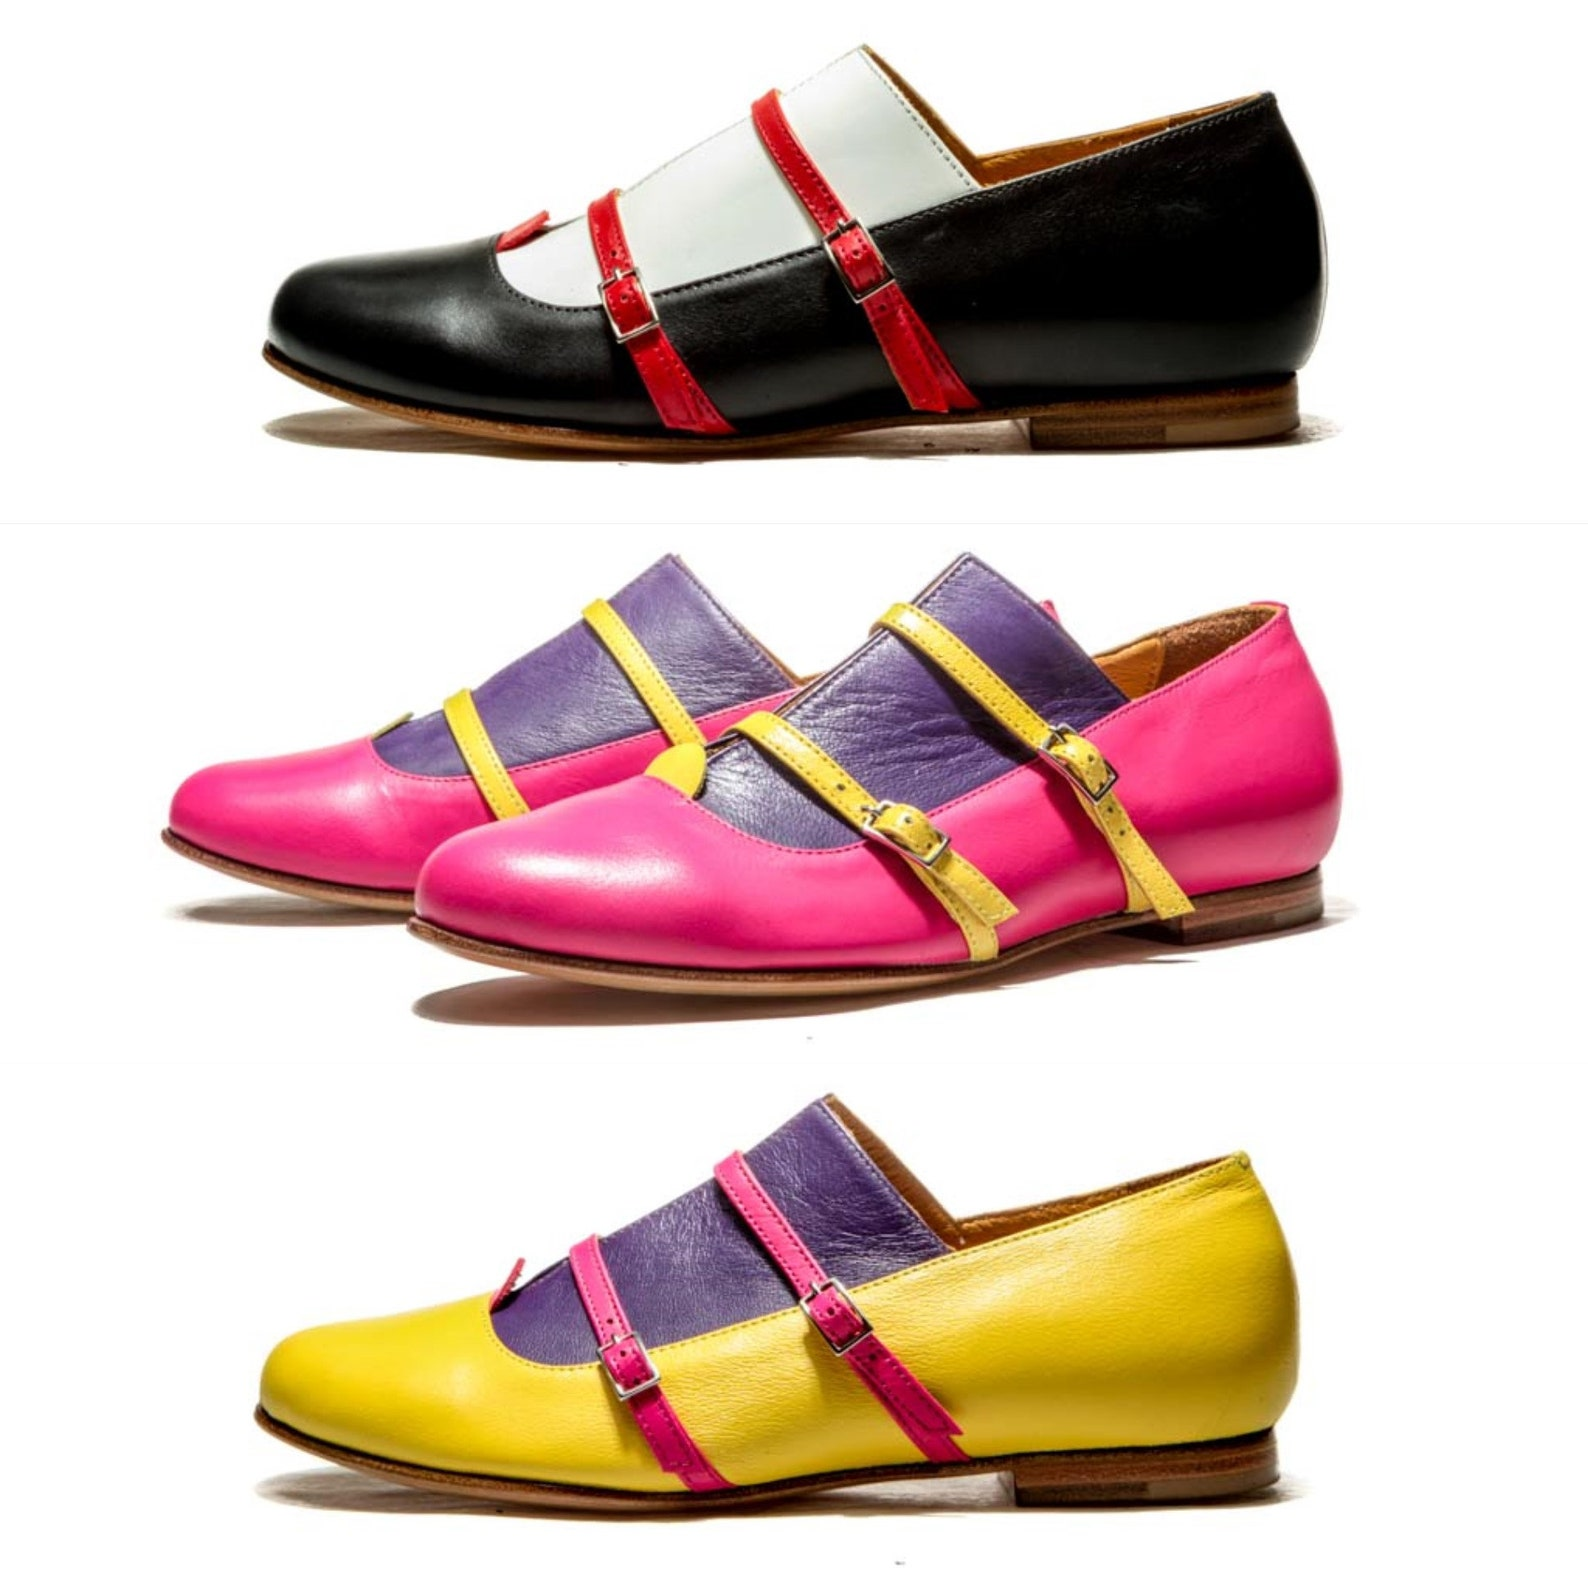 ballet flats/ black leather flats/ oxford shoes/ monks/ women's flats/ flat leather shoes/ buckle up shoes/ black and white/